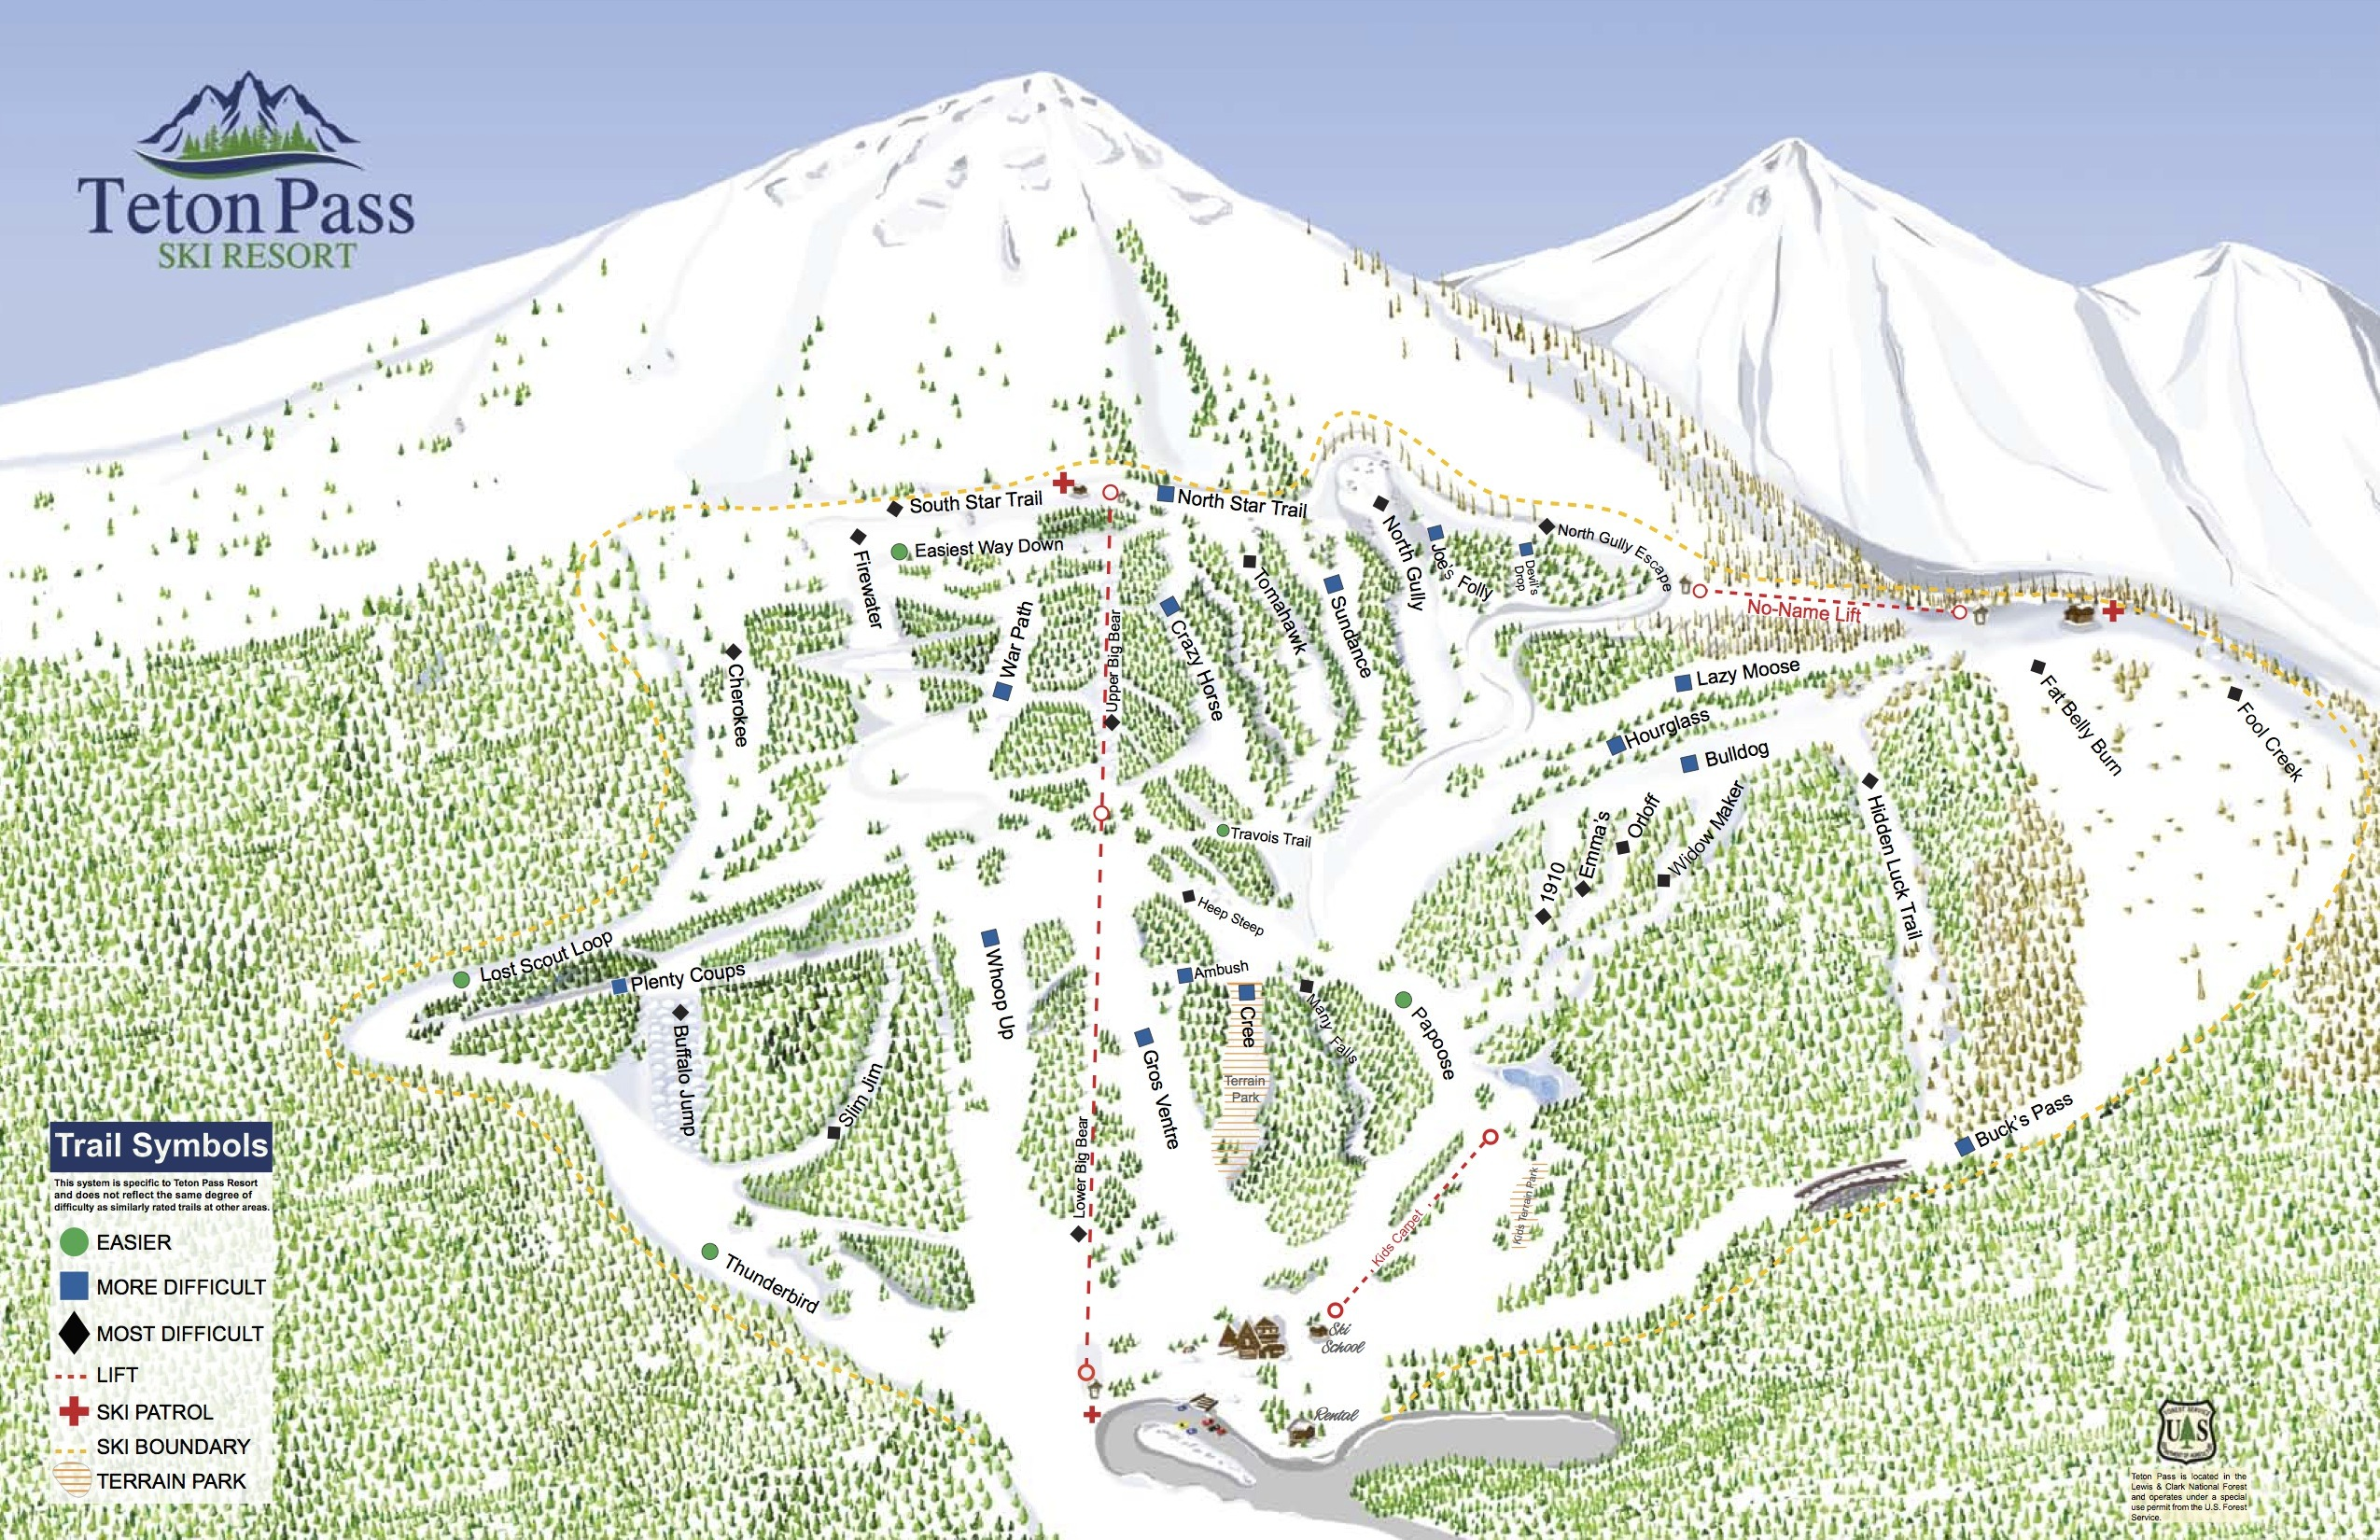 teton pass ski resort trail map | onthesnow